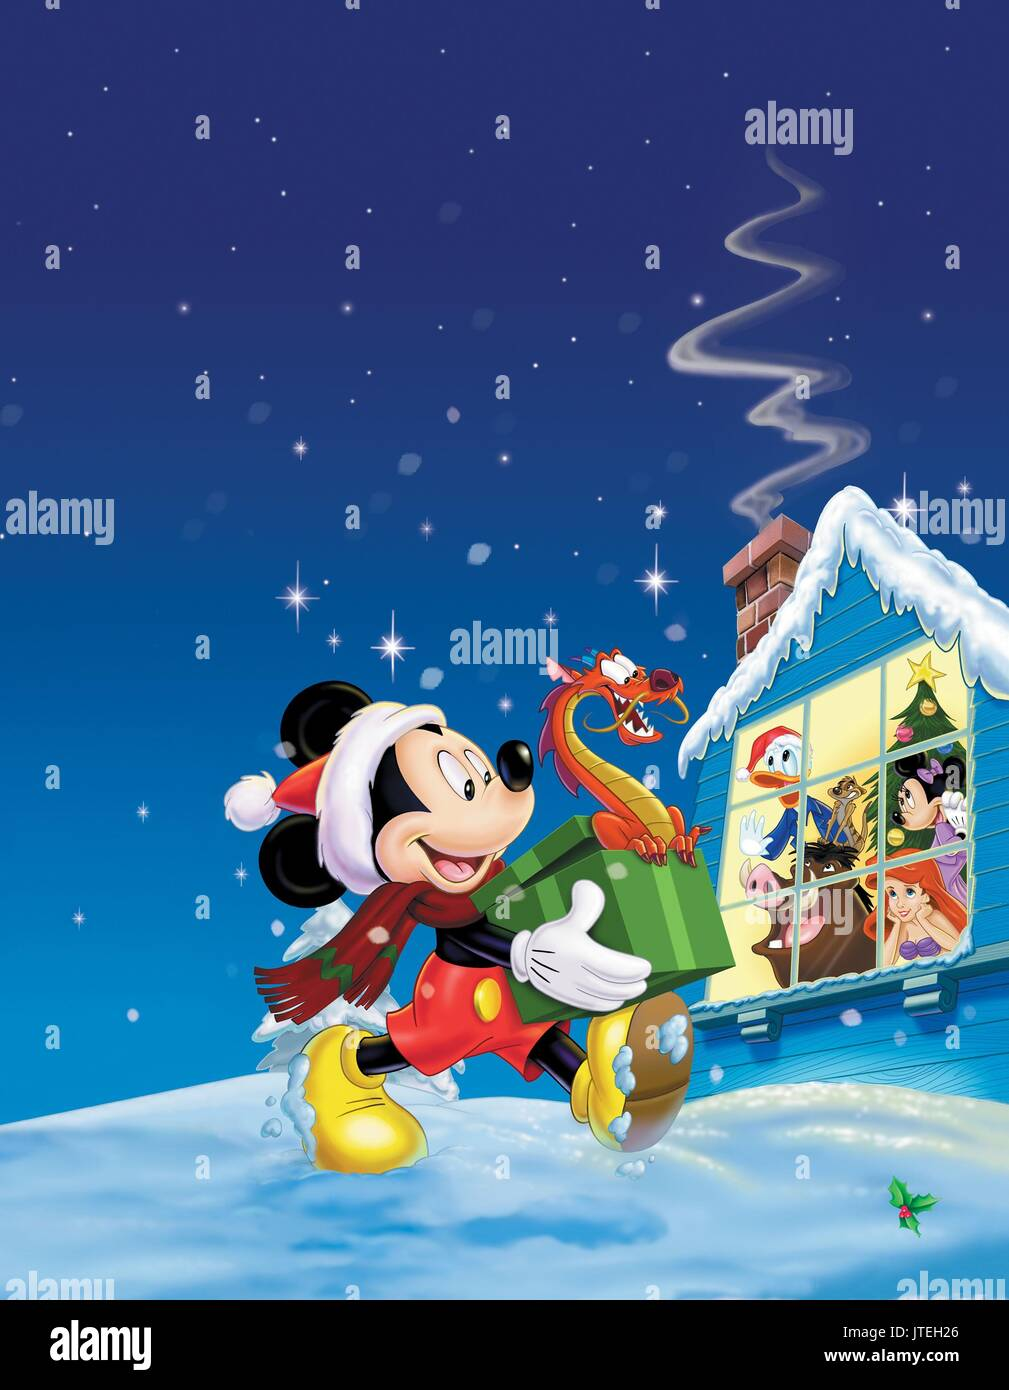 MICKEY MOUSE MICKEY'S MAGICAL CHRISTMAS: SNOWED IN AT THE HOUSE OF MOUSE (2001) - Stock Image